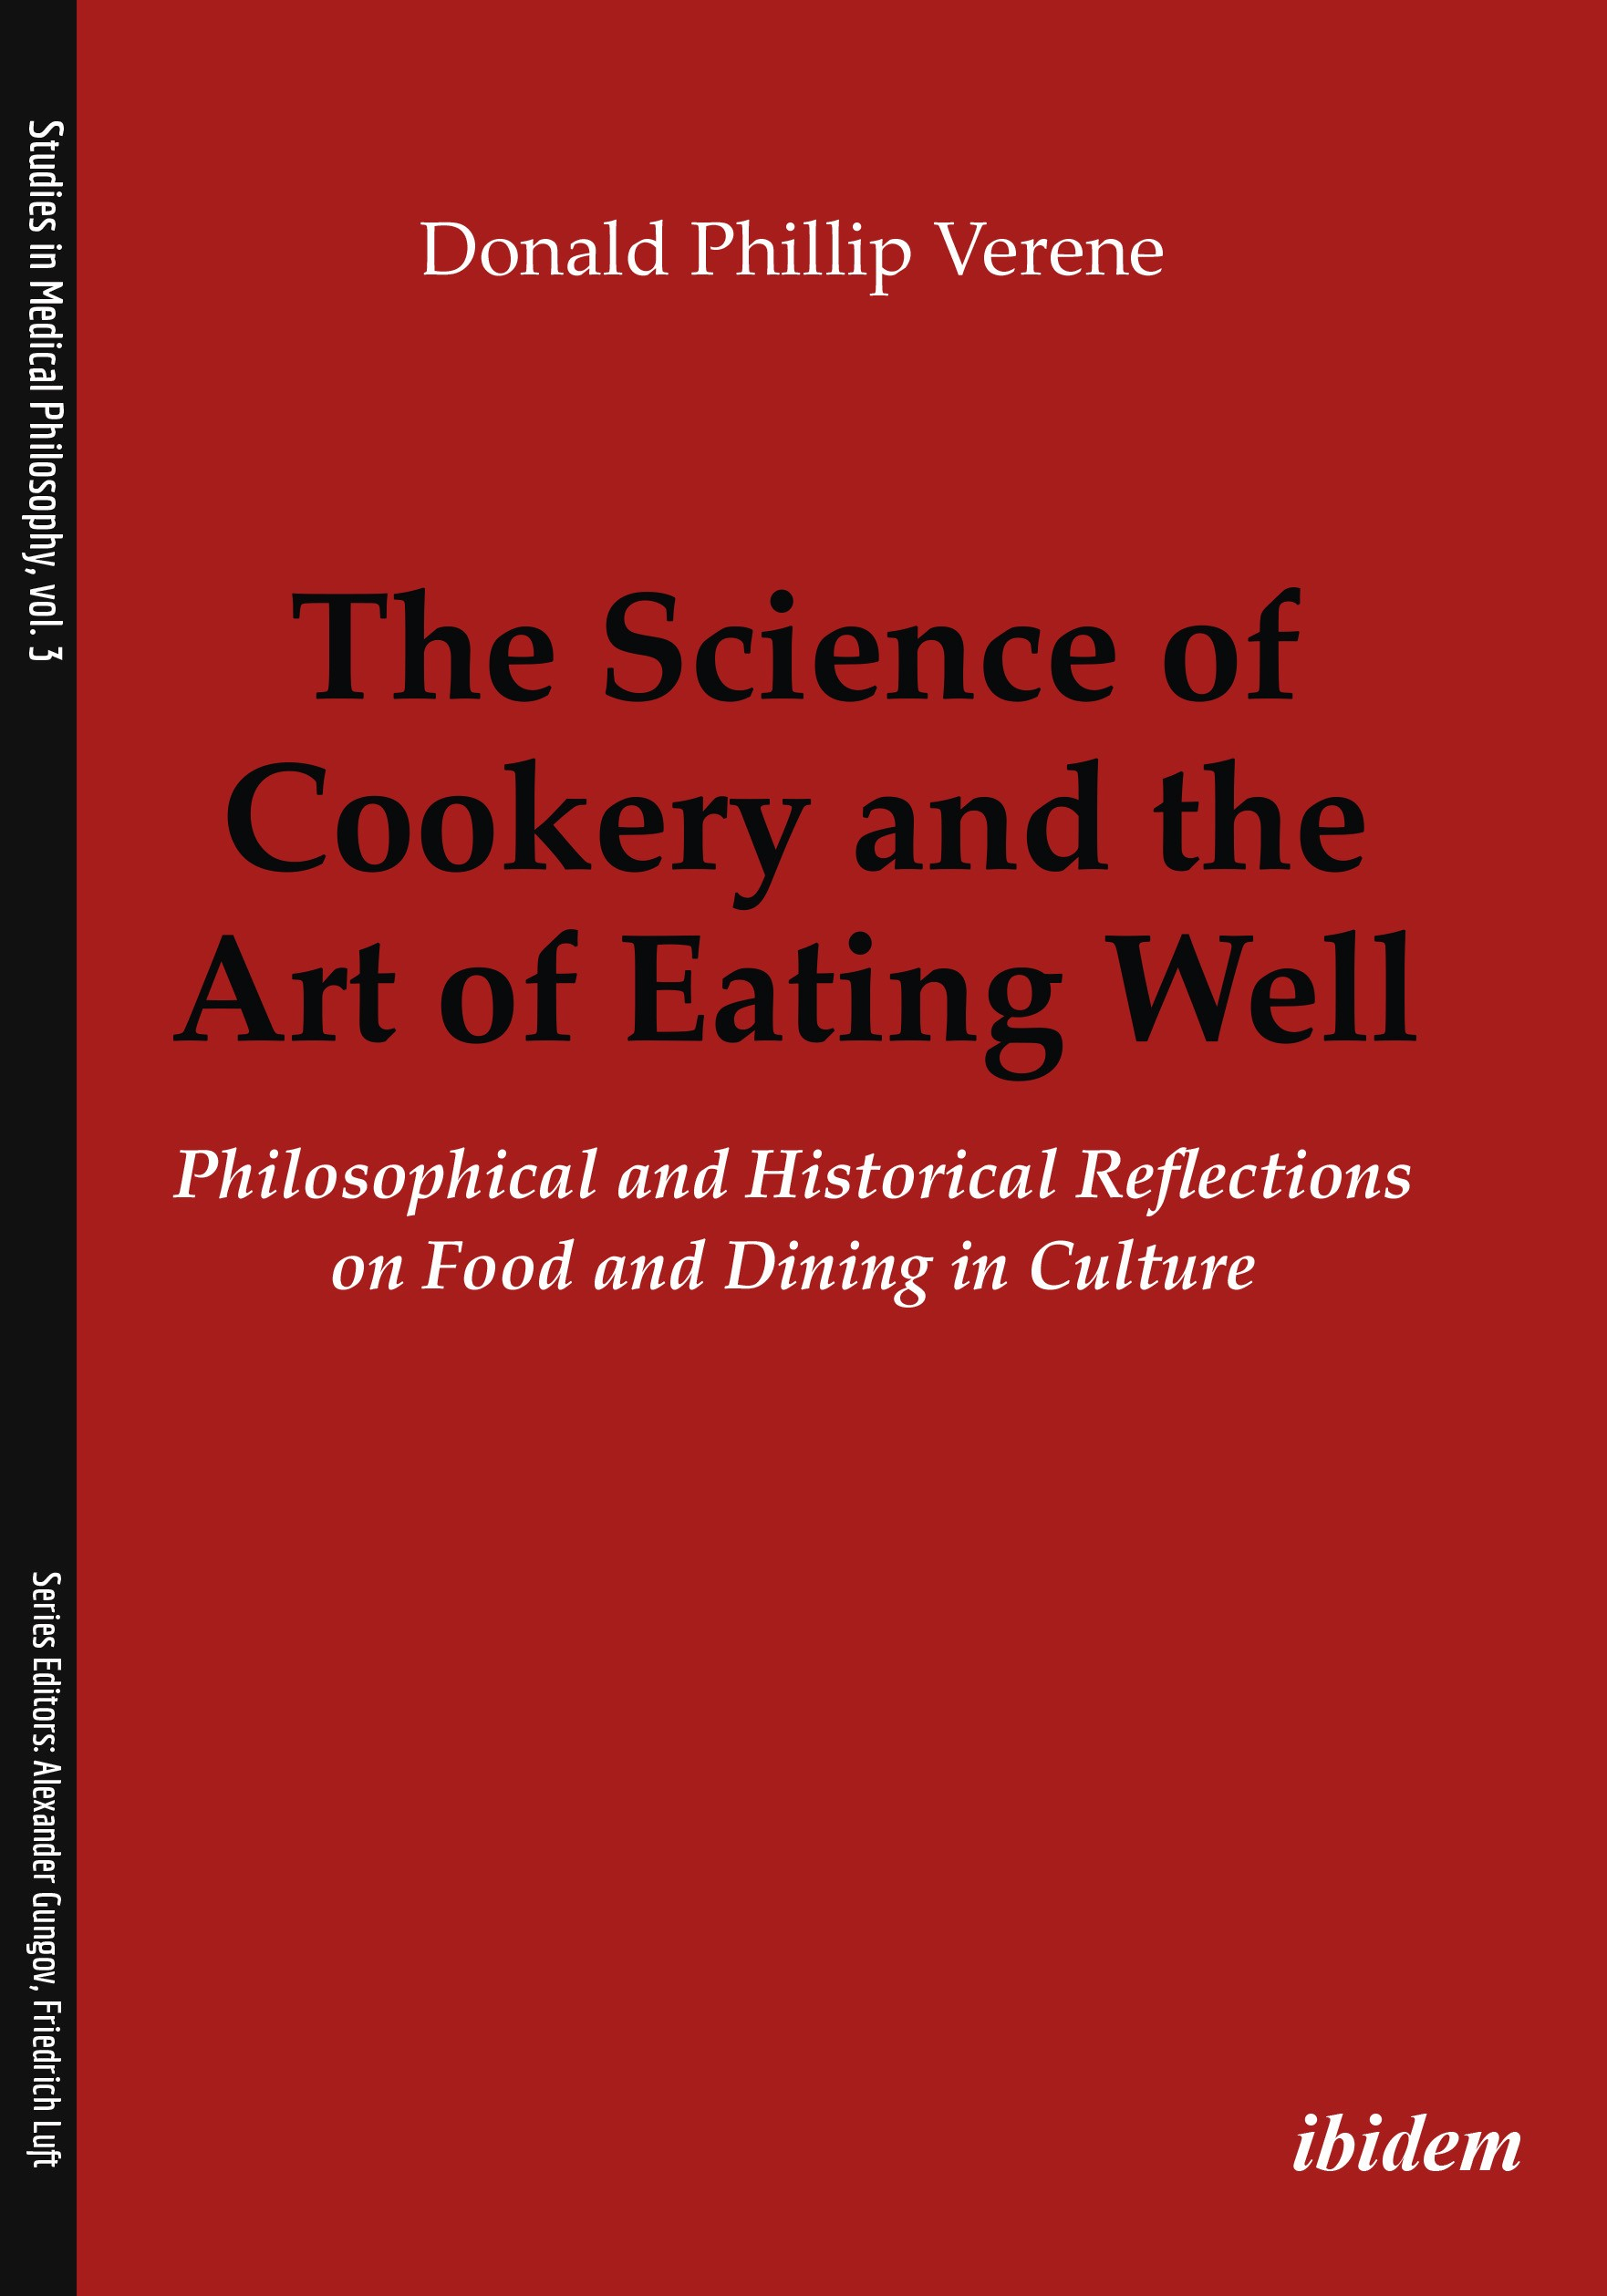 The Science of Cookery and the Art of Eating Well